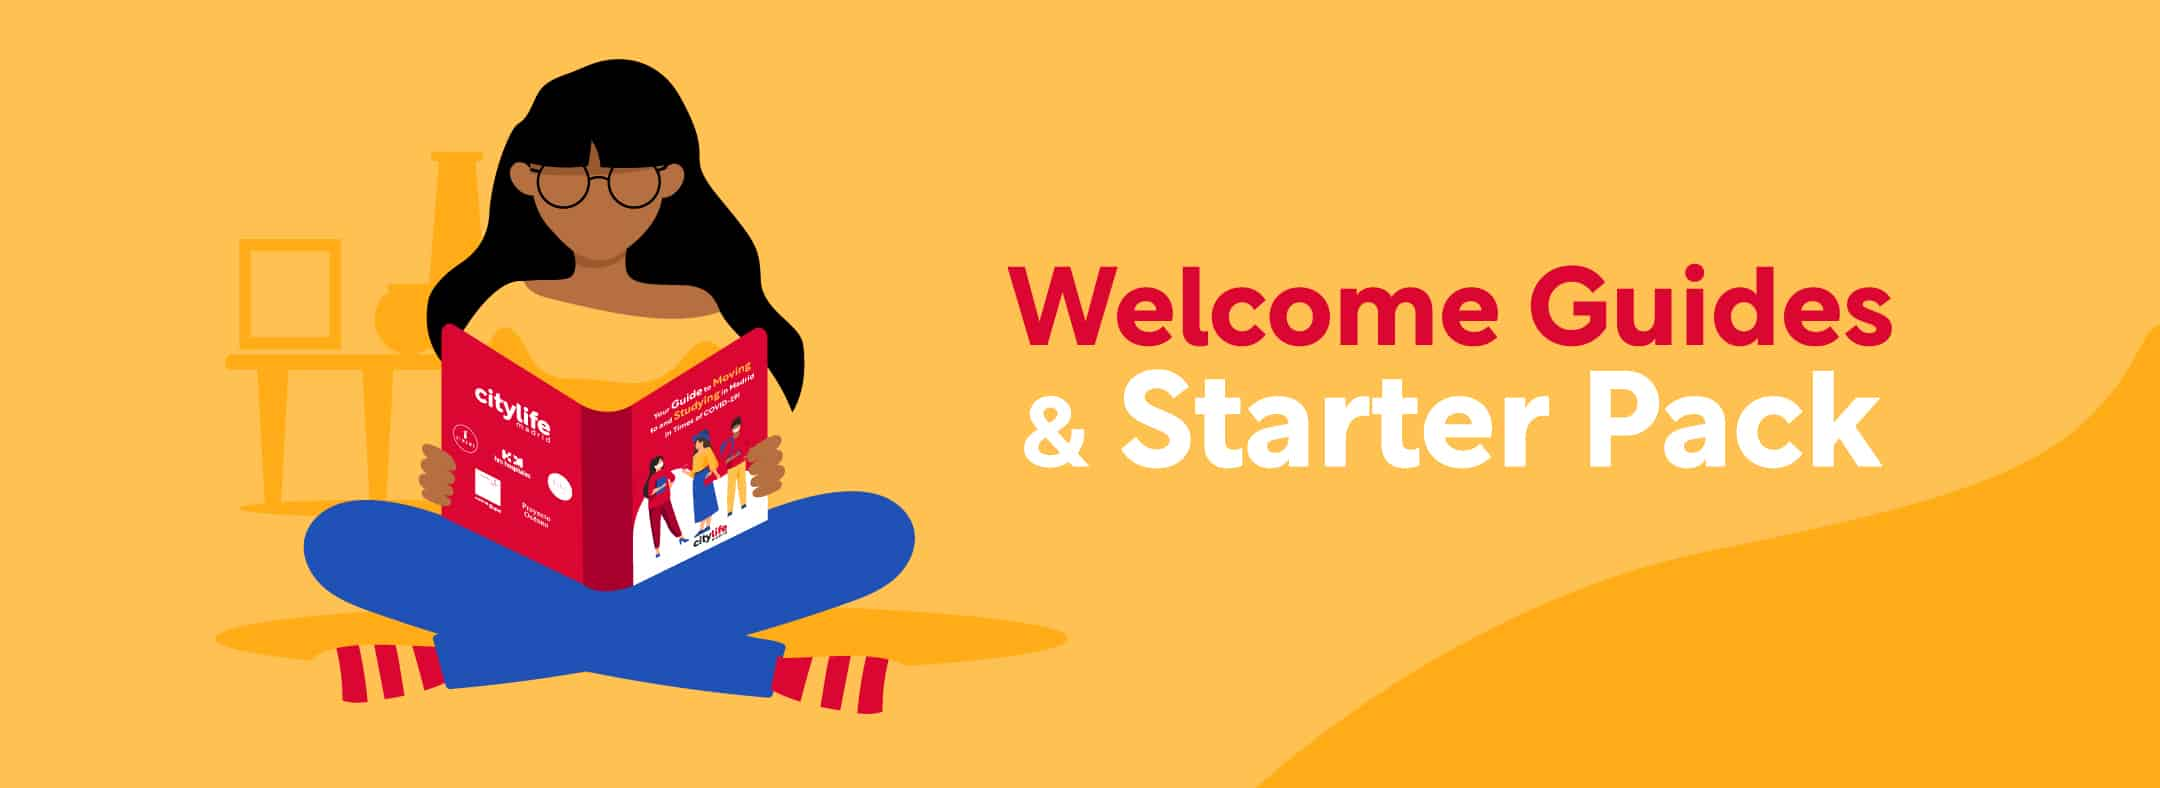 welcome-guides-starter-pack-web